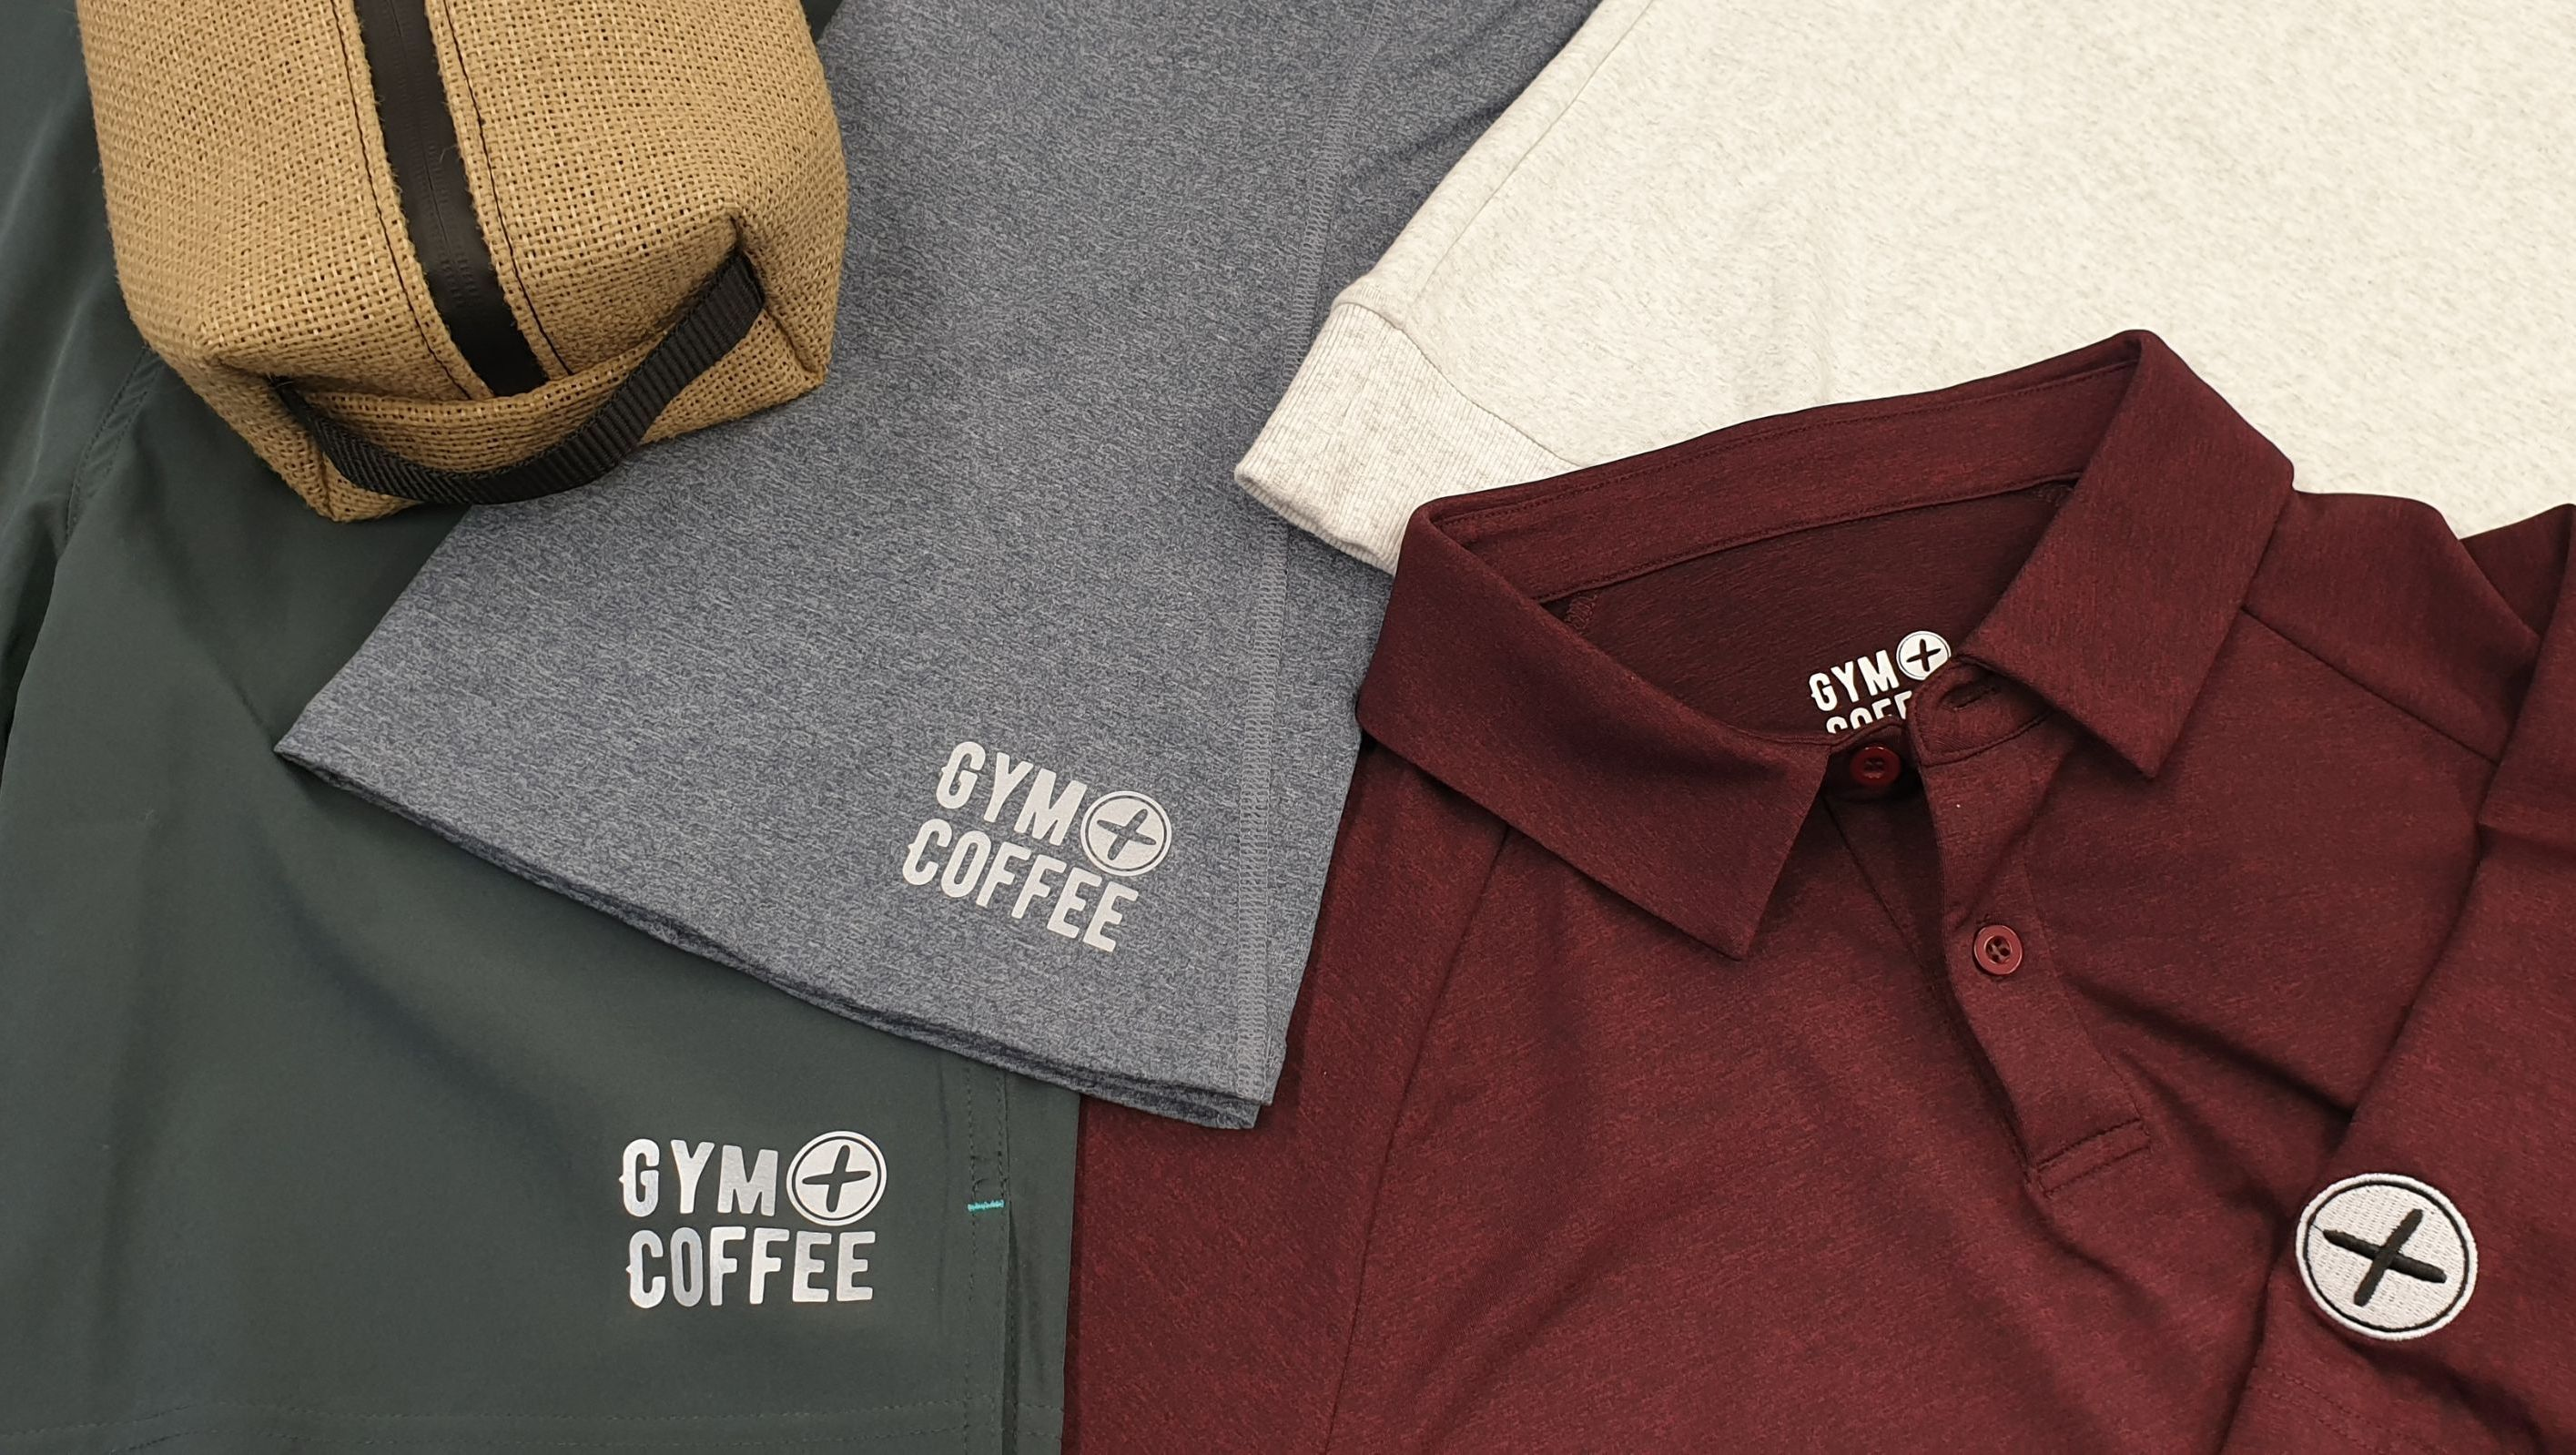 Gym+Coffee Under €50 Gift Guide